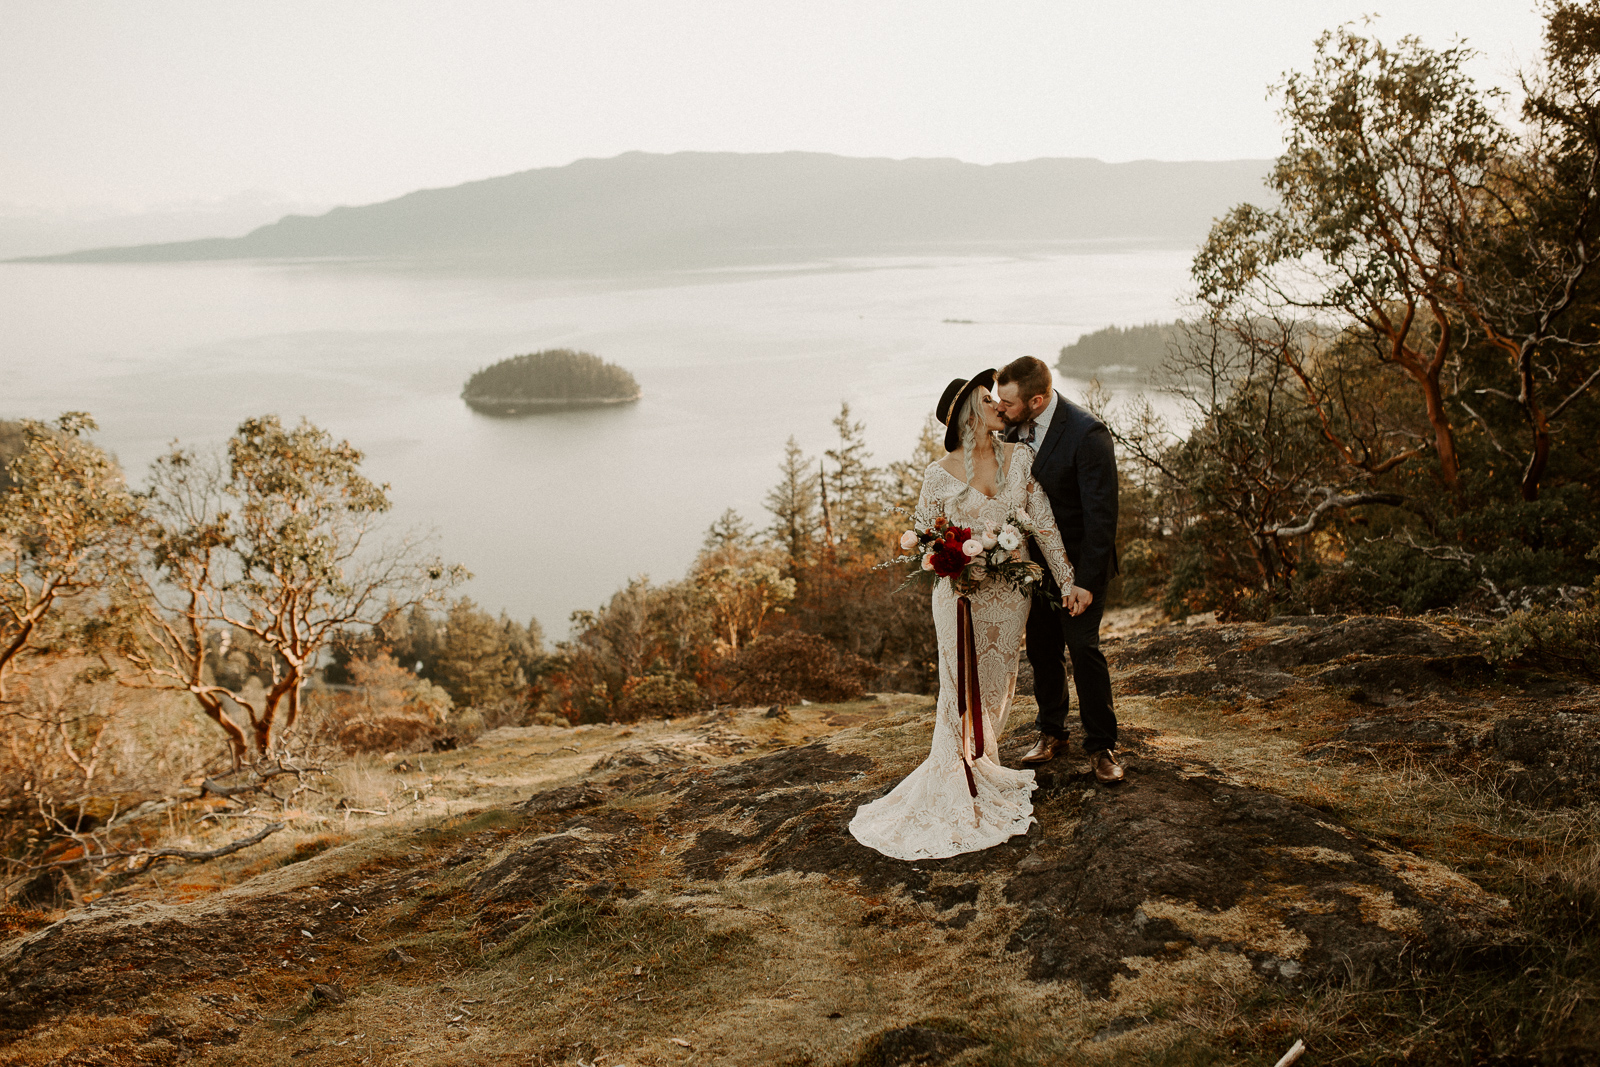 Luke Lambertson Photo_BritishColumbia_Canada_AdventurousCouple_Elopement_IMG-7950.jpg